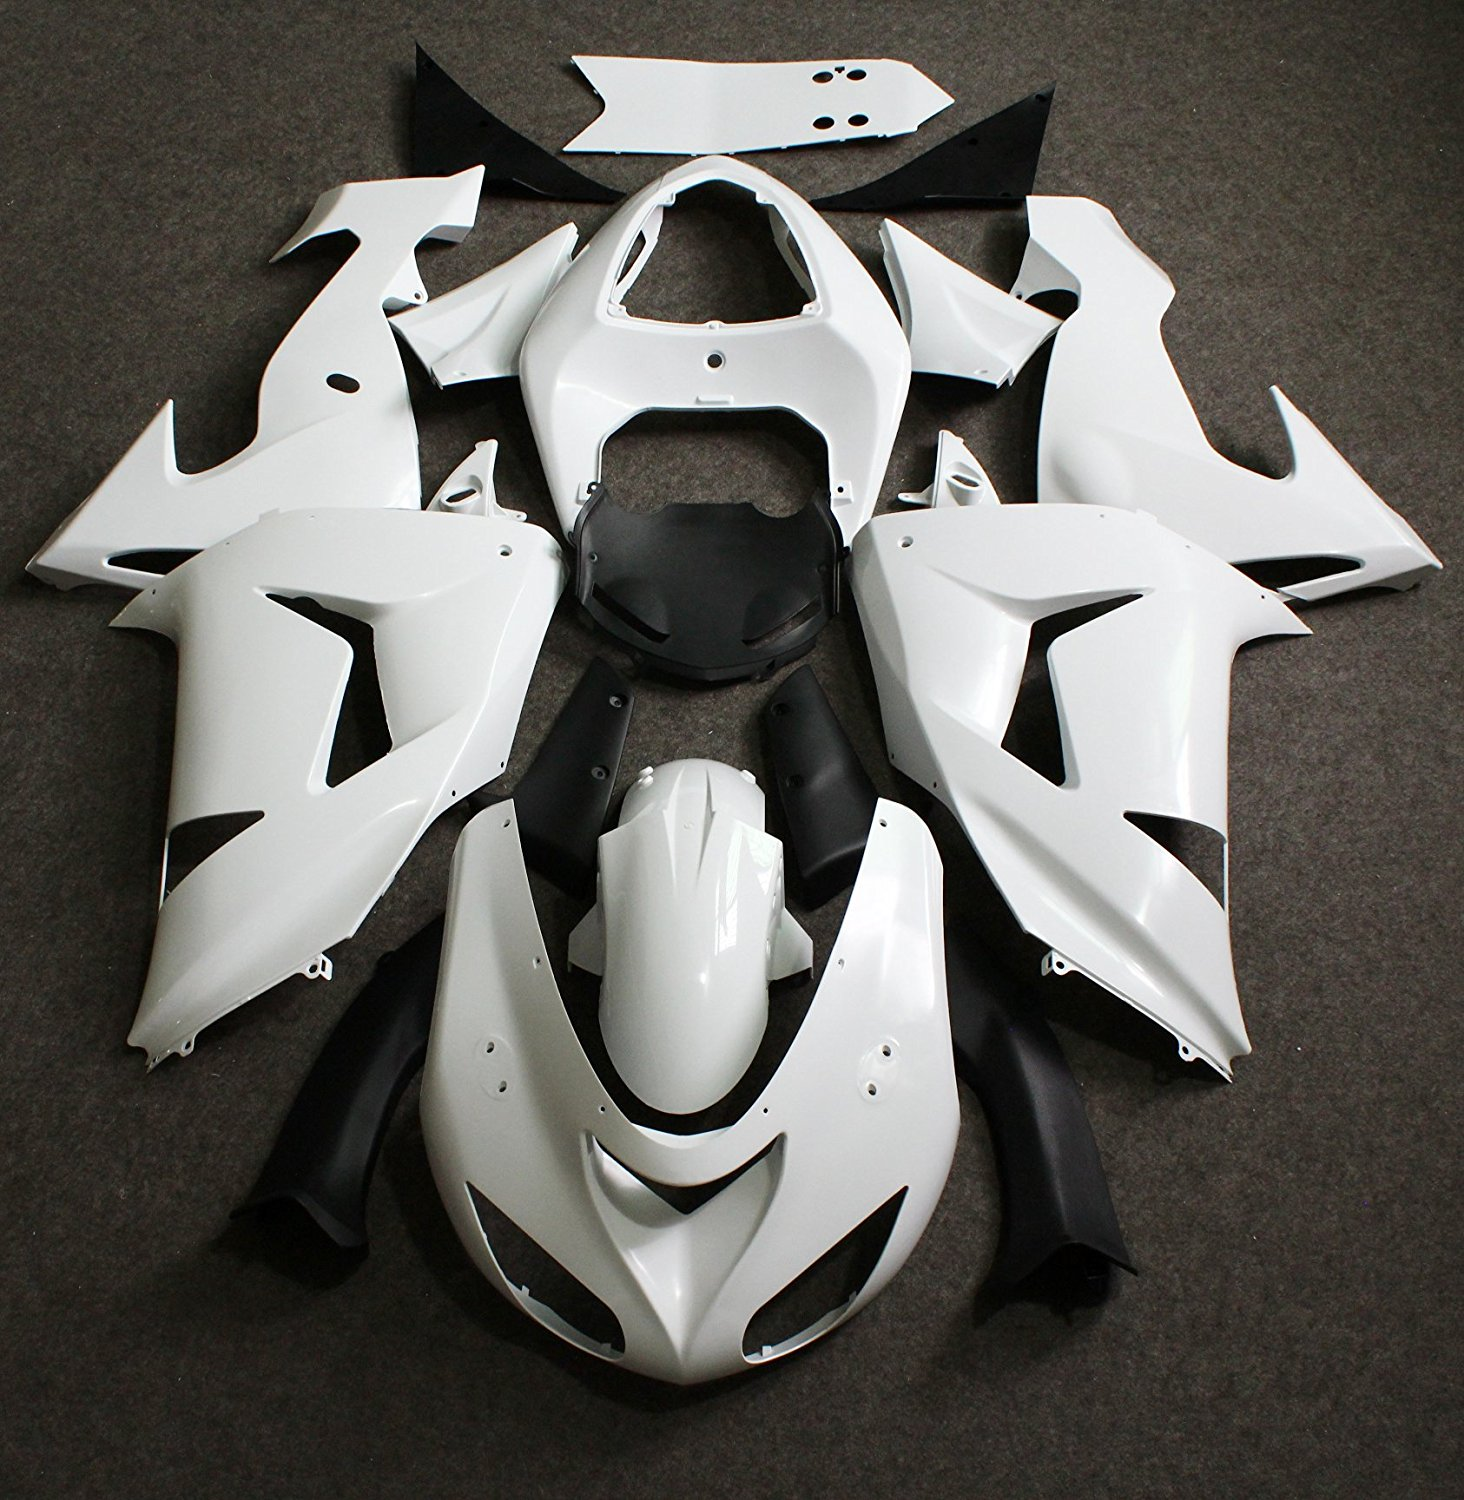 Motorcycle Unpainted Fairing Kit For Kawasaki Ninja ZX-10R ZX10R 2006 - 2007 ZX 10R 06 07 Bodywork Fairings Injection Molding avignon джинсовая верхняя одежда